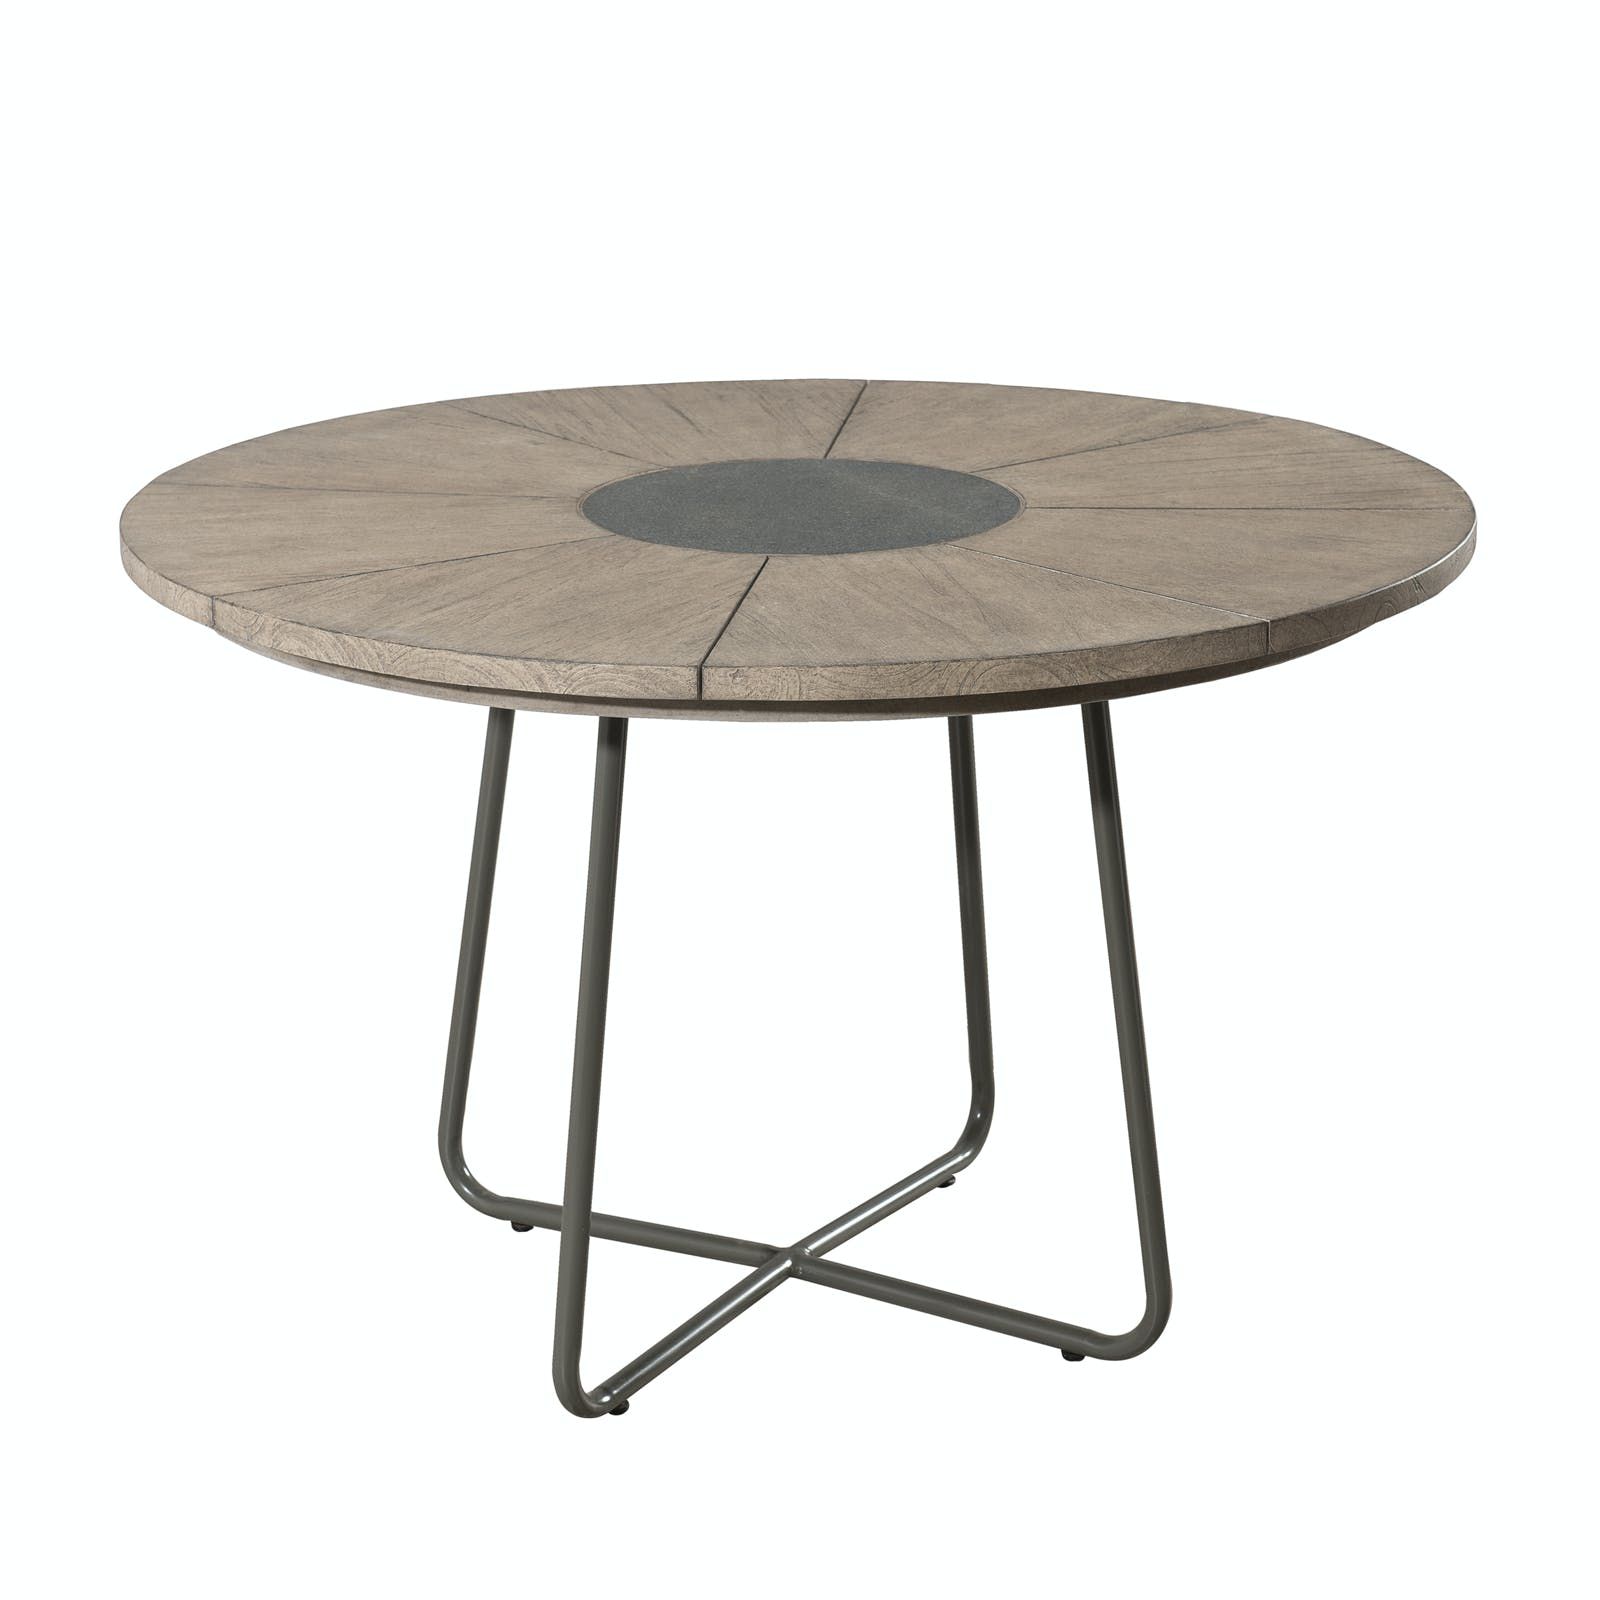 Table de Jardin en Teck Pierre D120cm DETROIT ref. 30020816